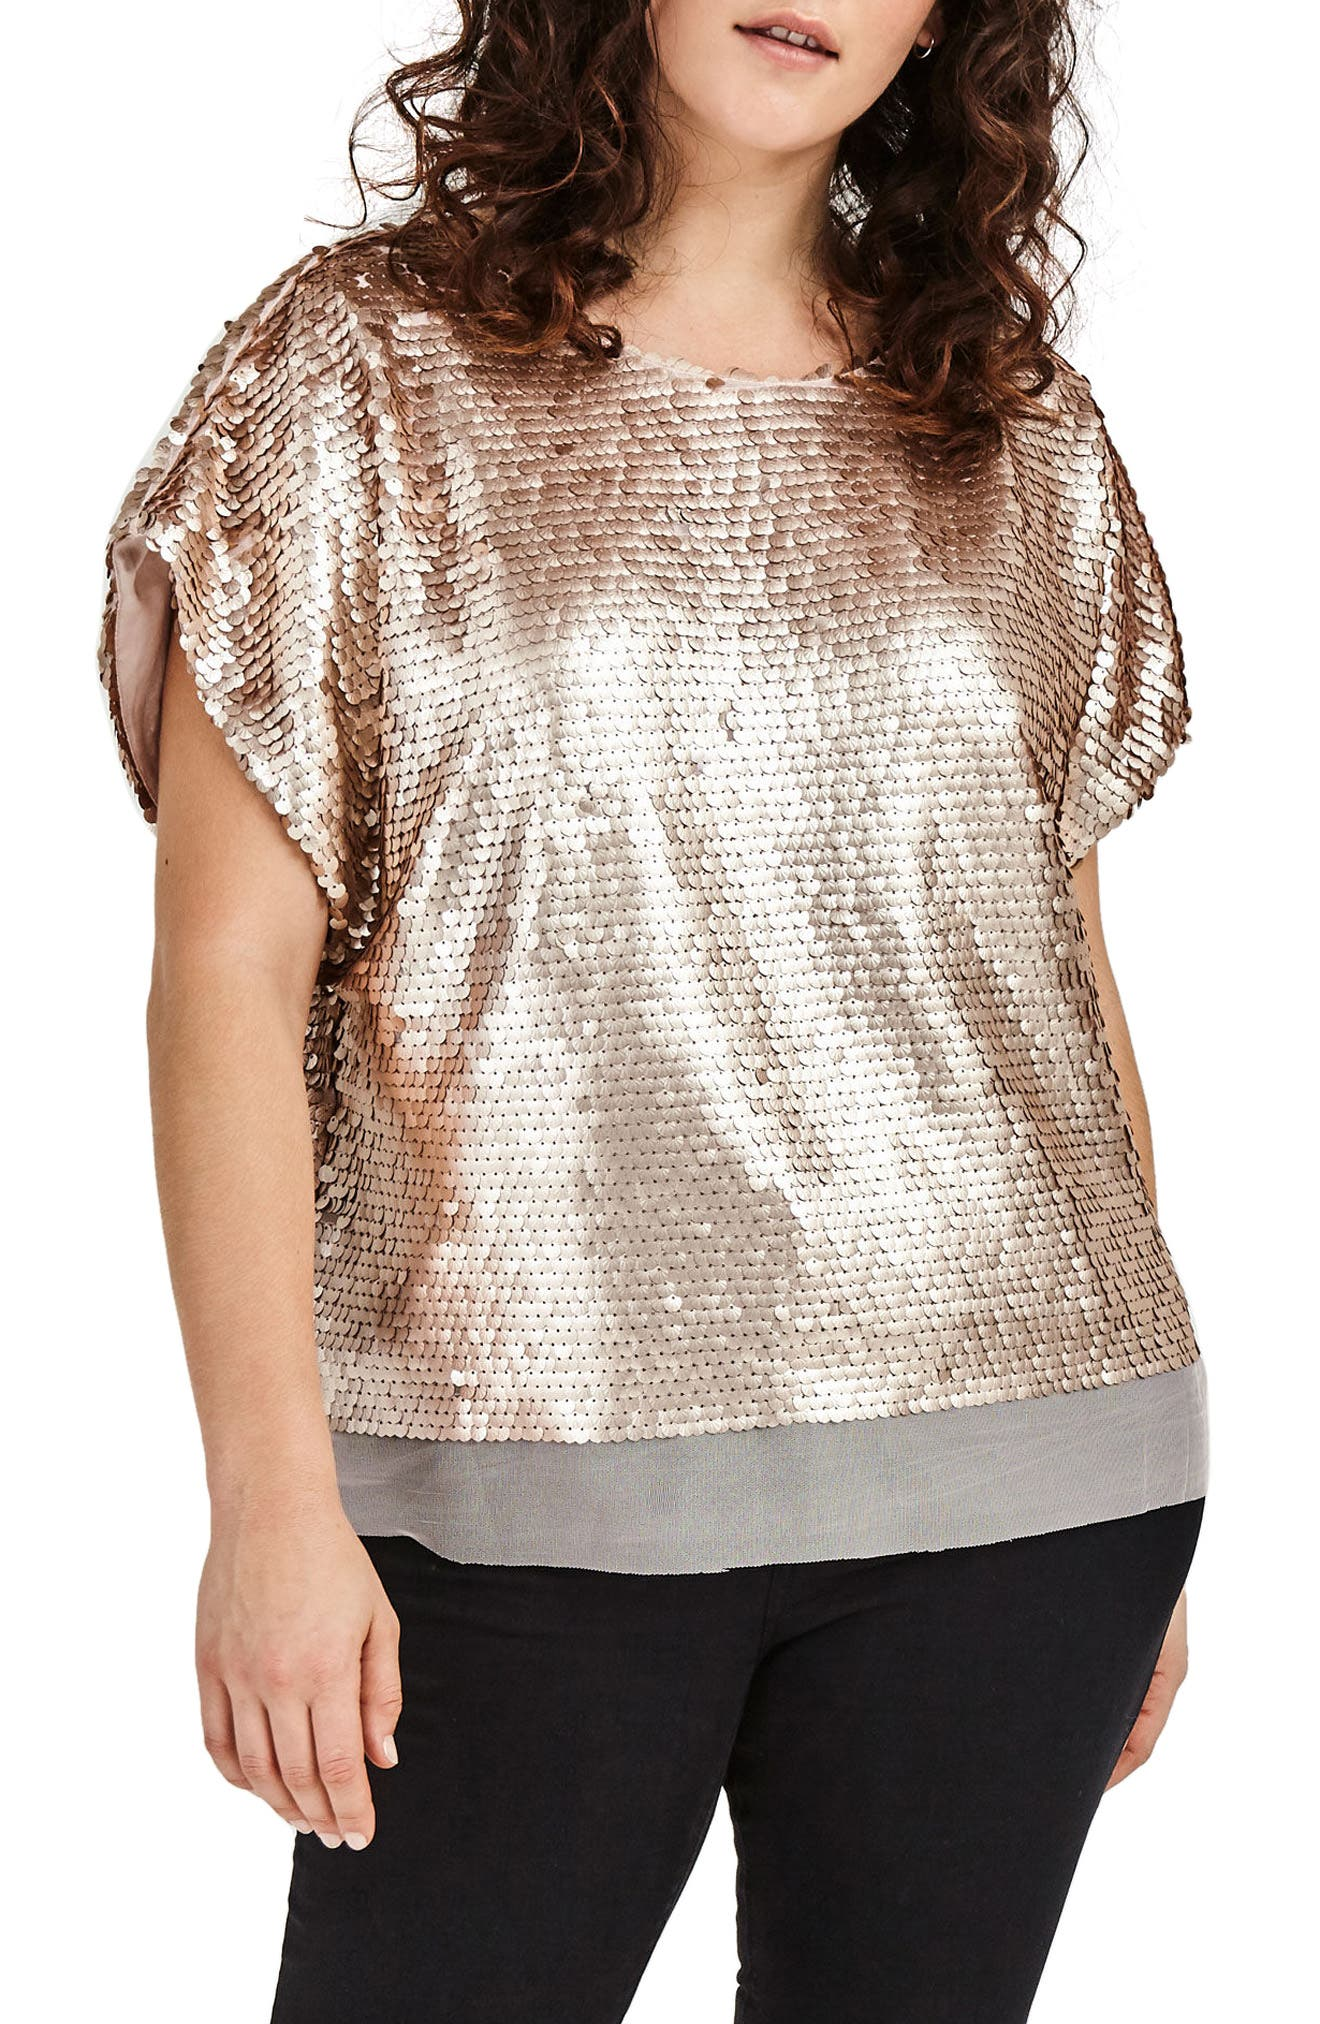 Nude Sequin Boxy Top,                             Main thumbnail 1, color,                             250